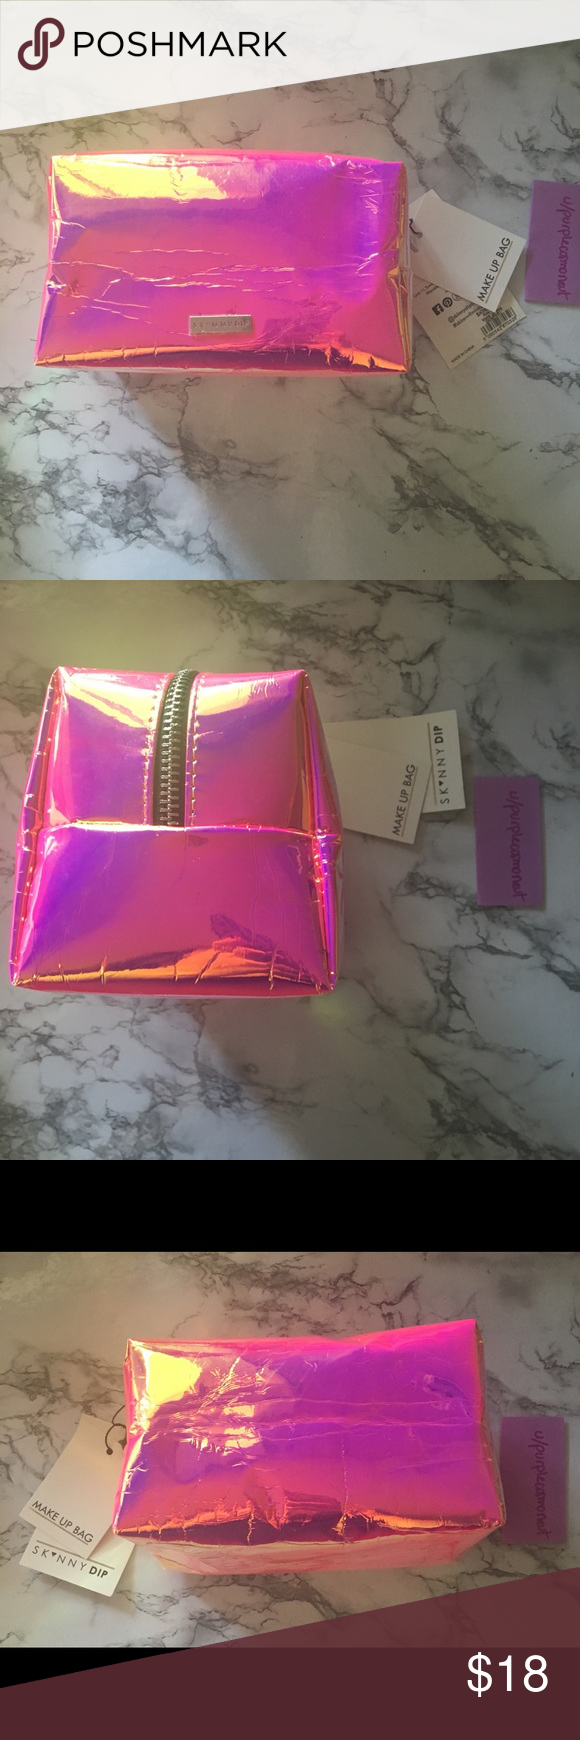 Skinnydip Hot Pink Holo travel makeup bag This is a